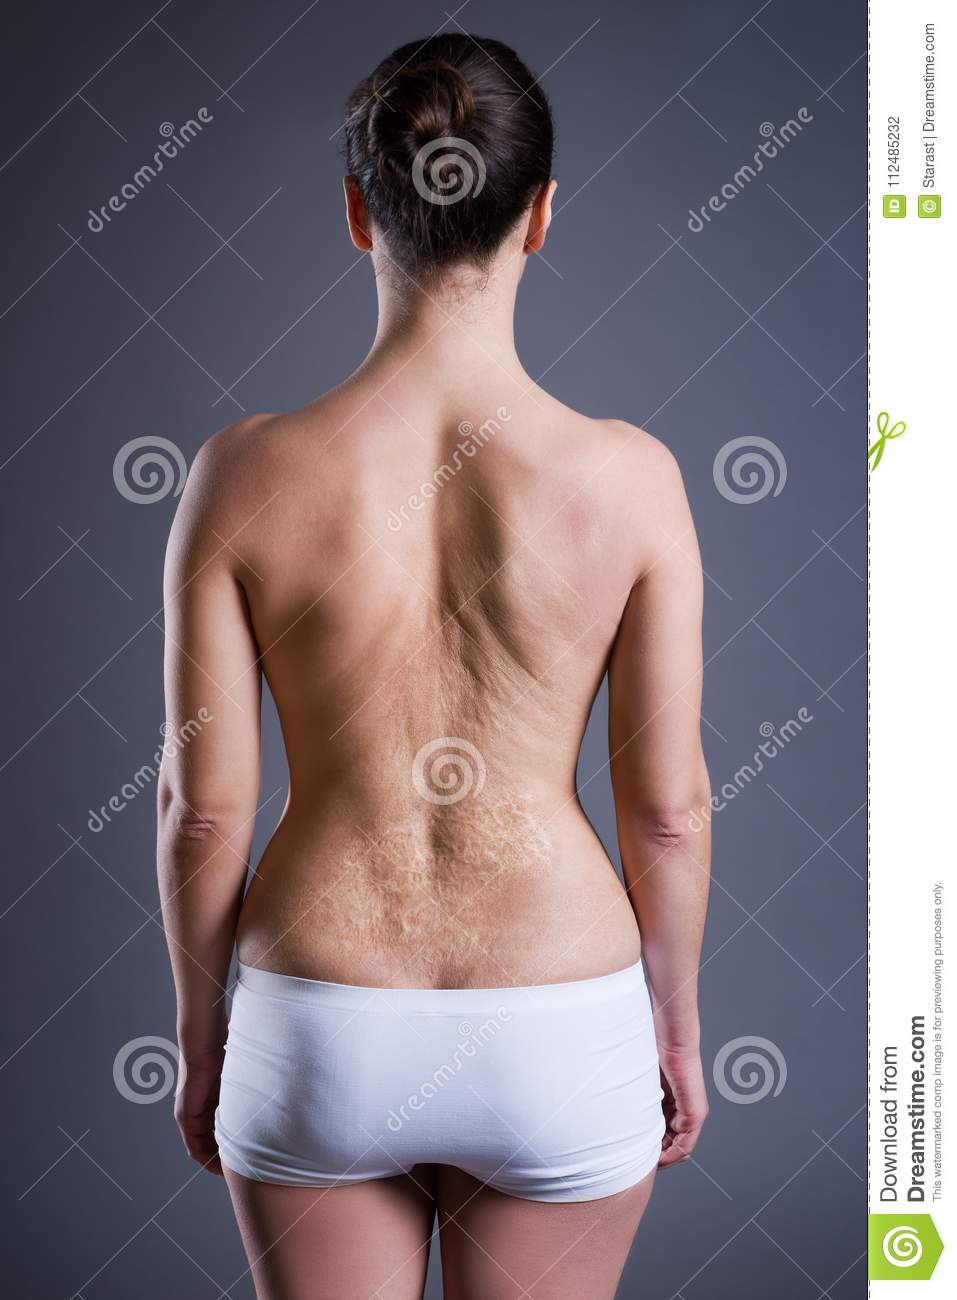 Woman with a large scar after burn on the back